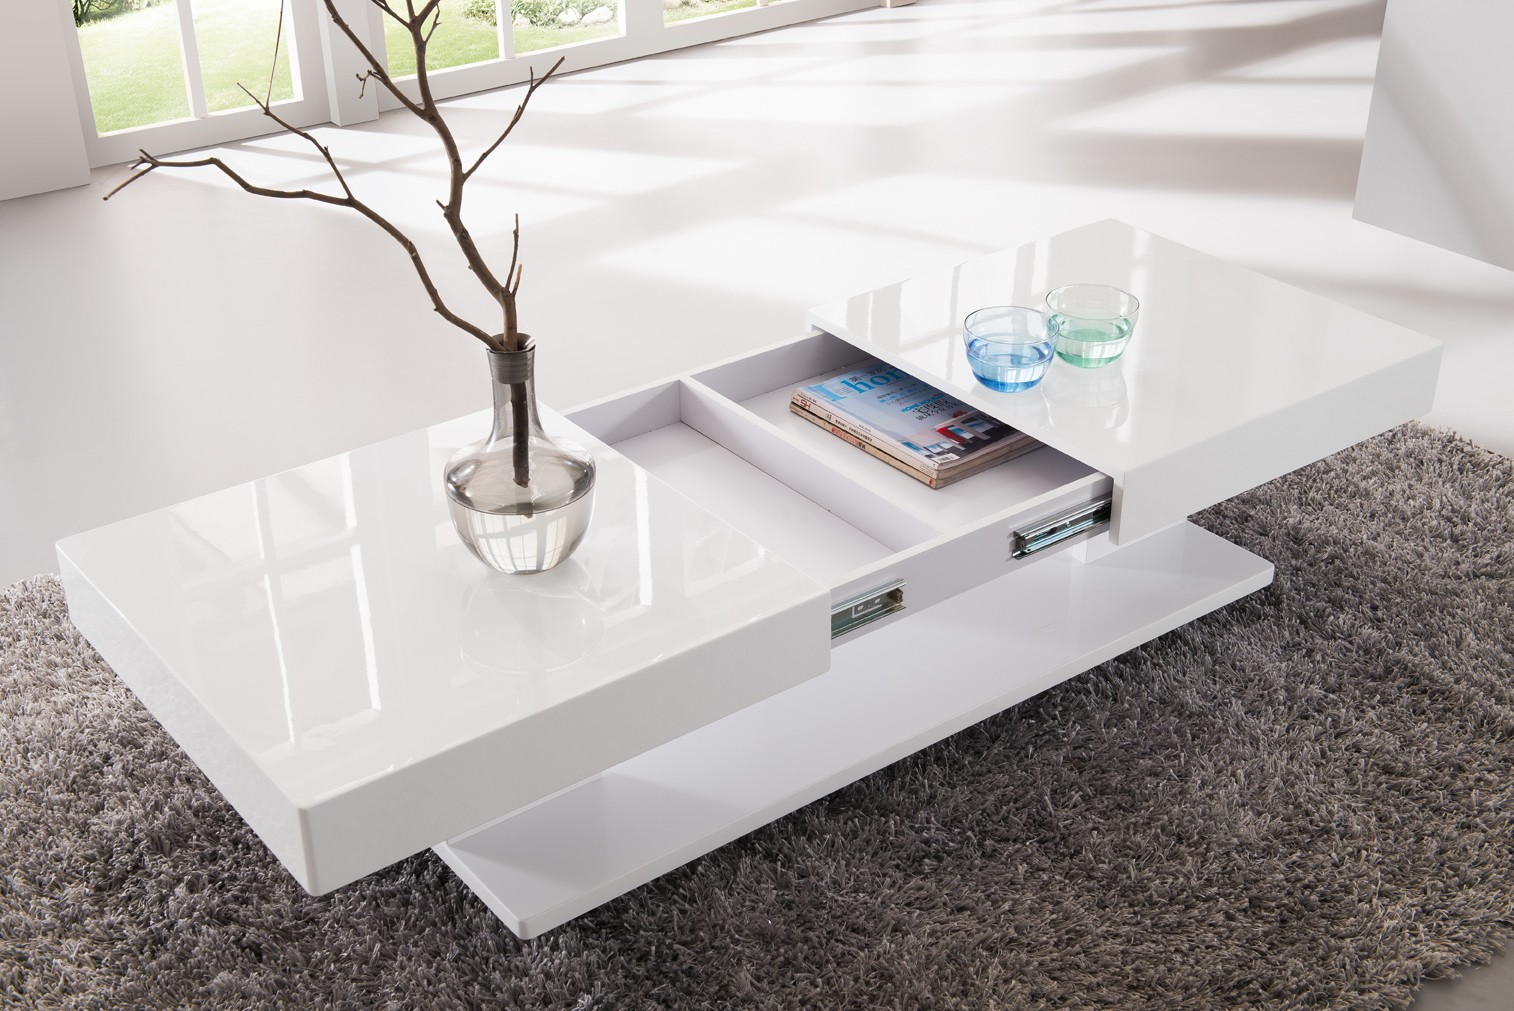 Table basse pas cher tunisie mobilier design d coration for Decoration interieur design pas cher